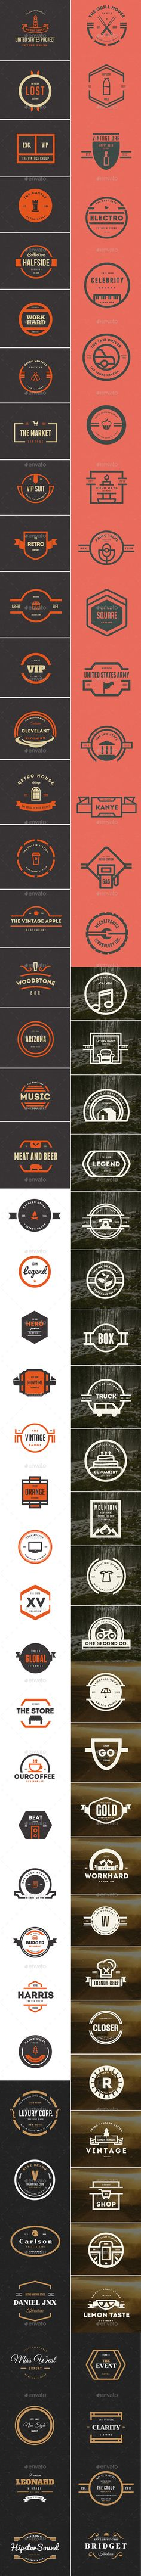 Buy 87 Vintage Labels & Badges Logos Bundle by designdistrictmx on GraphicRiver. 87 Retro Vintage Labels and Badges that you can use on Logos with emblem style, on beer labels, restaurants, coffee s. Badge Design, Tool Design, Emblem Logo, Vintage Type, Retro Vintage, Badges, Retro Design, Graphic Design, Coffee Logo